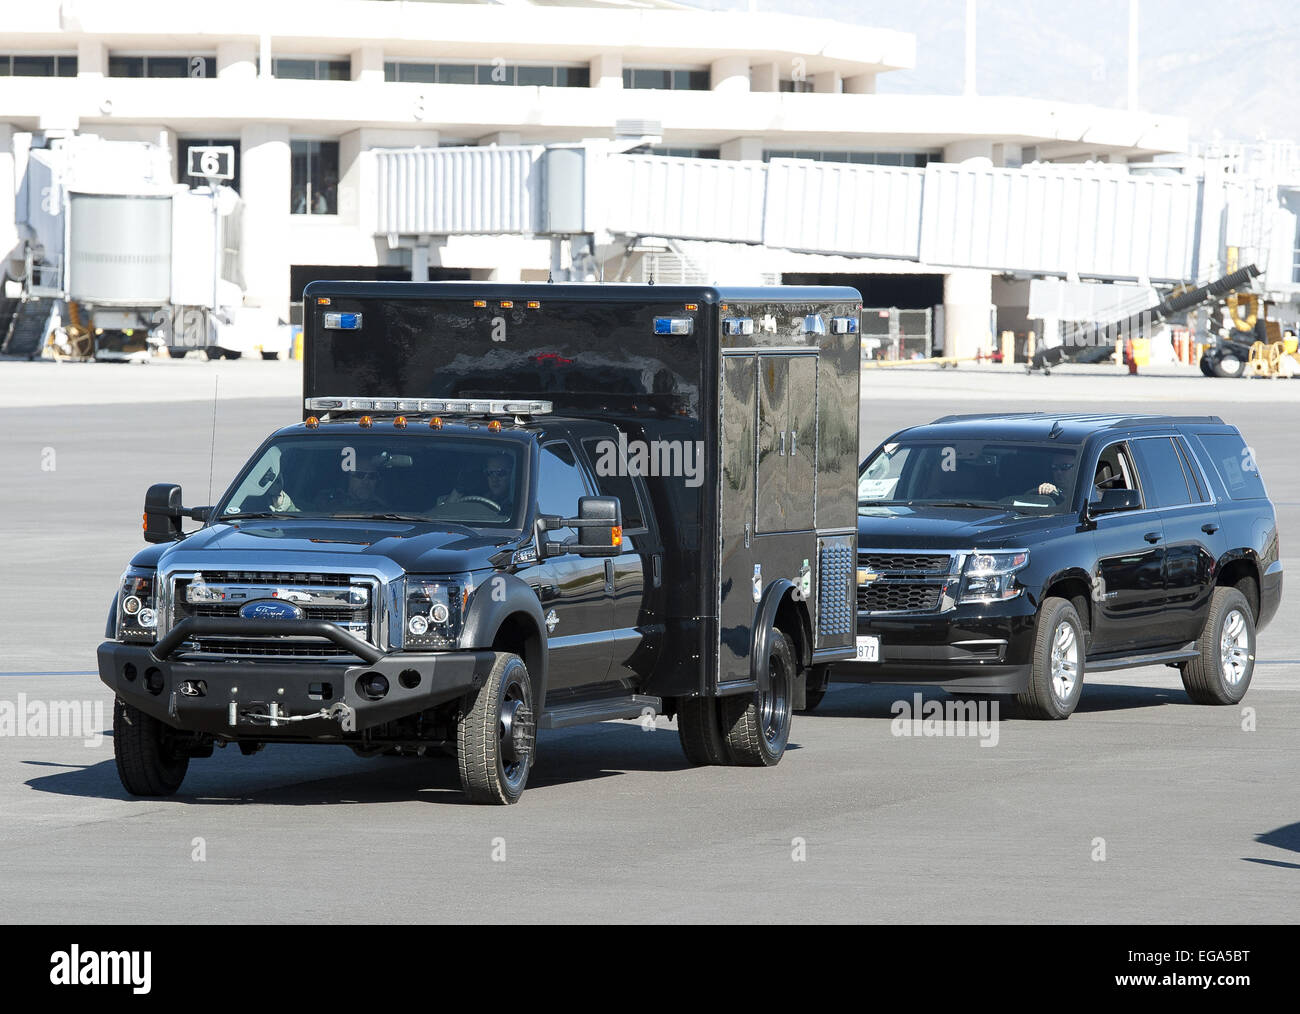 Palm Springs, California, USA. 14th Feb, 2015. President Obama arrived in Palm Springs over the Valentine's - Stock Image